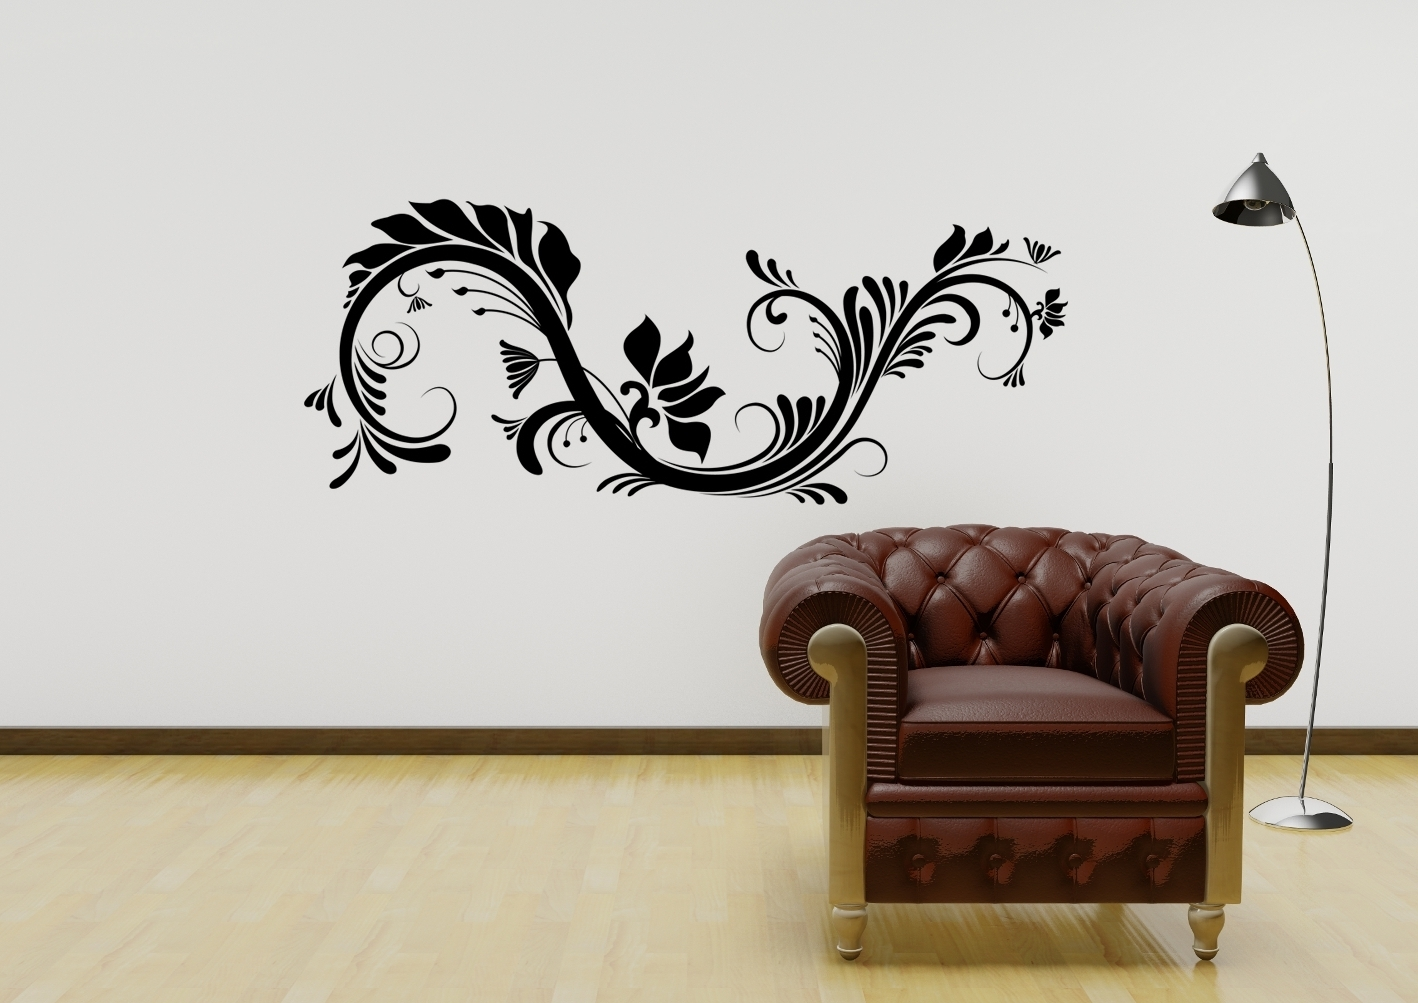 Decoration Wall Decor Paintings And Prints Framed Wall Art And Decor inside Art For Walls (Image 8 of 20)